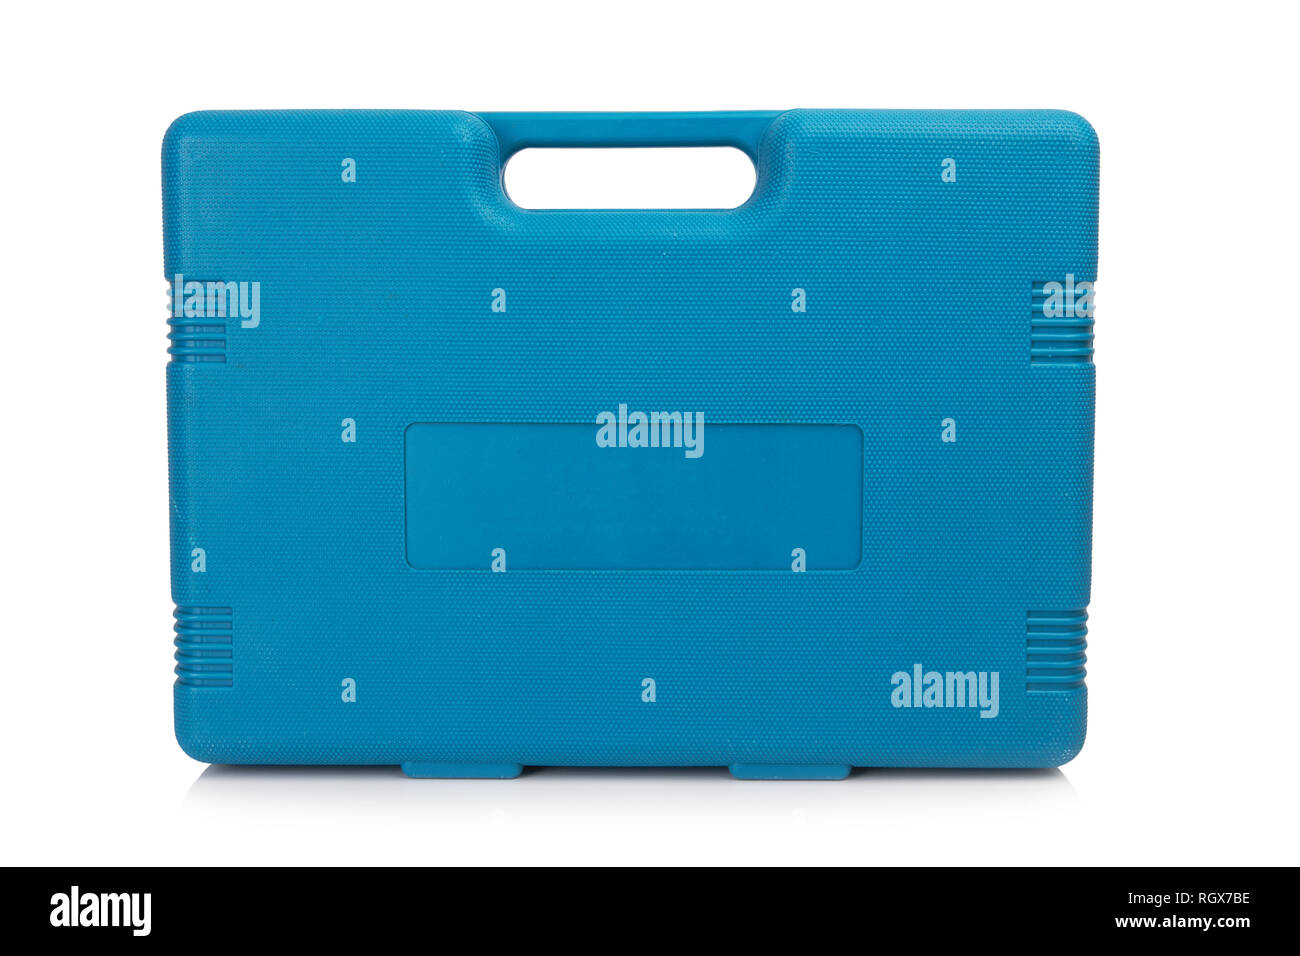 Tool box isolated on a white background - Stock Image